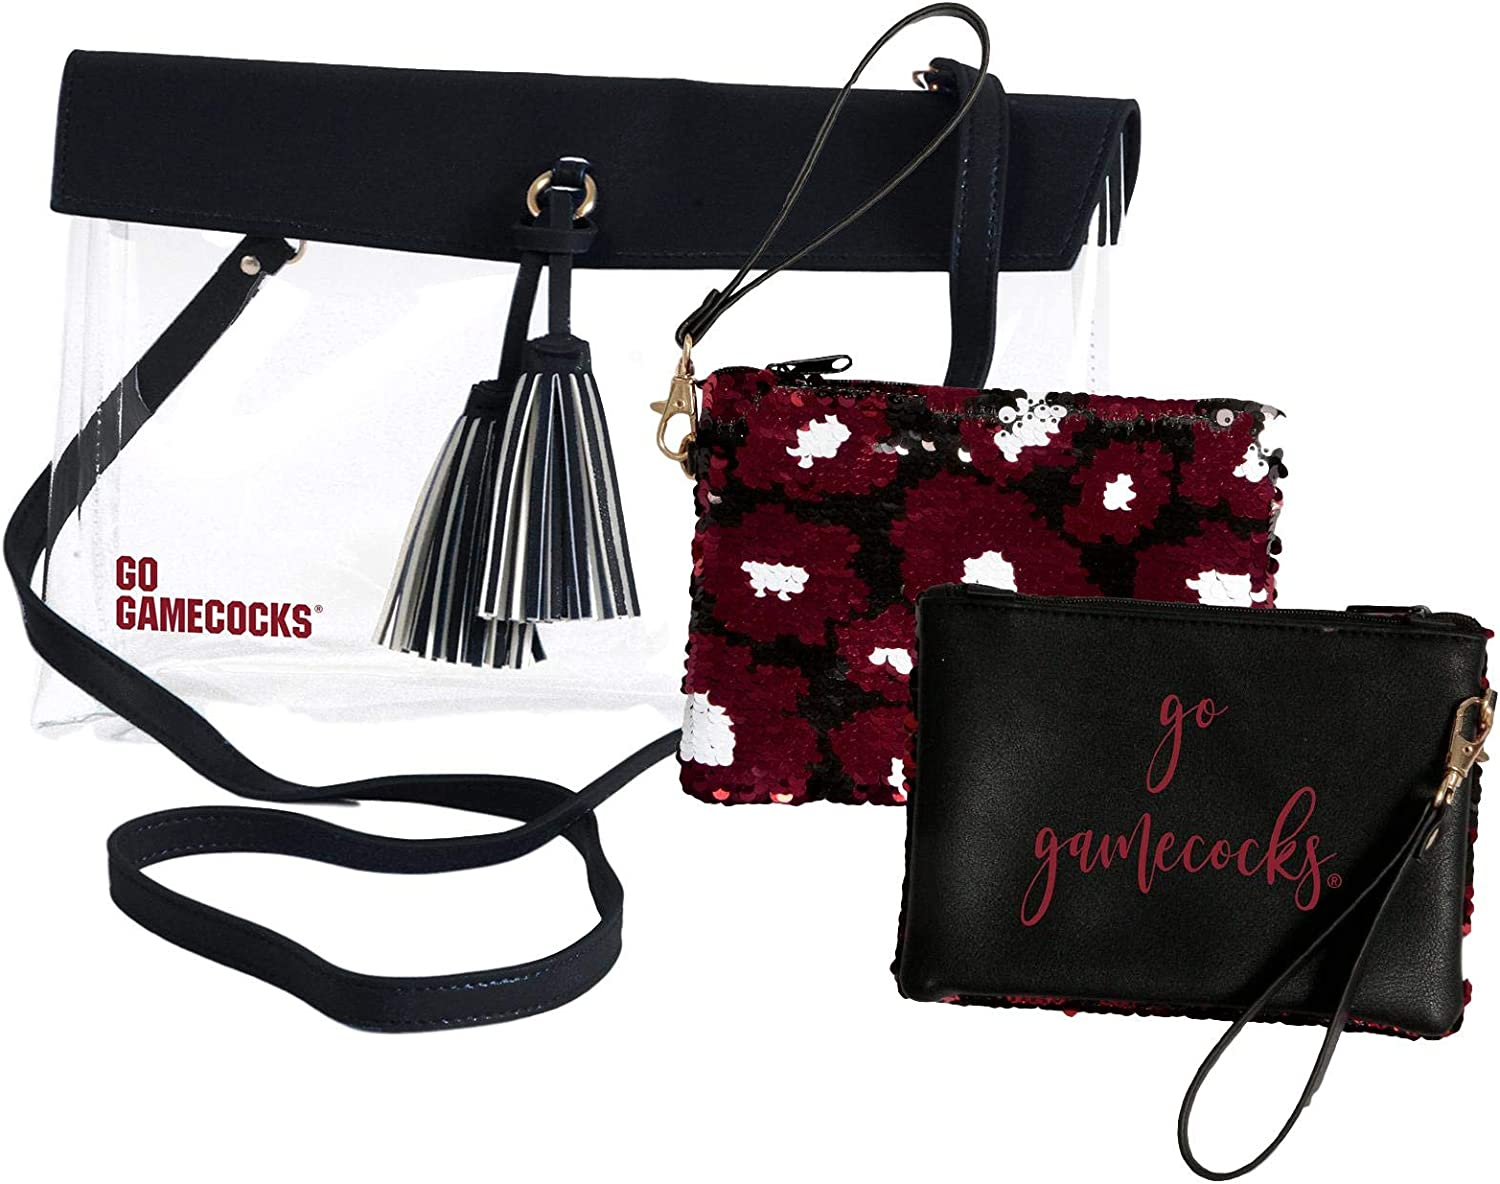 South Carolina Gamecocks Clear Handbag//Purse and Reversible Sequined Wristlet Combo with Vegan Leather Trim and Removable Straps